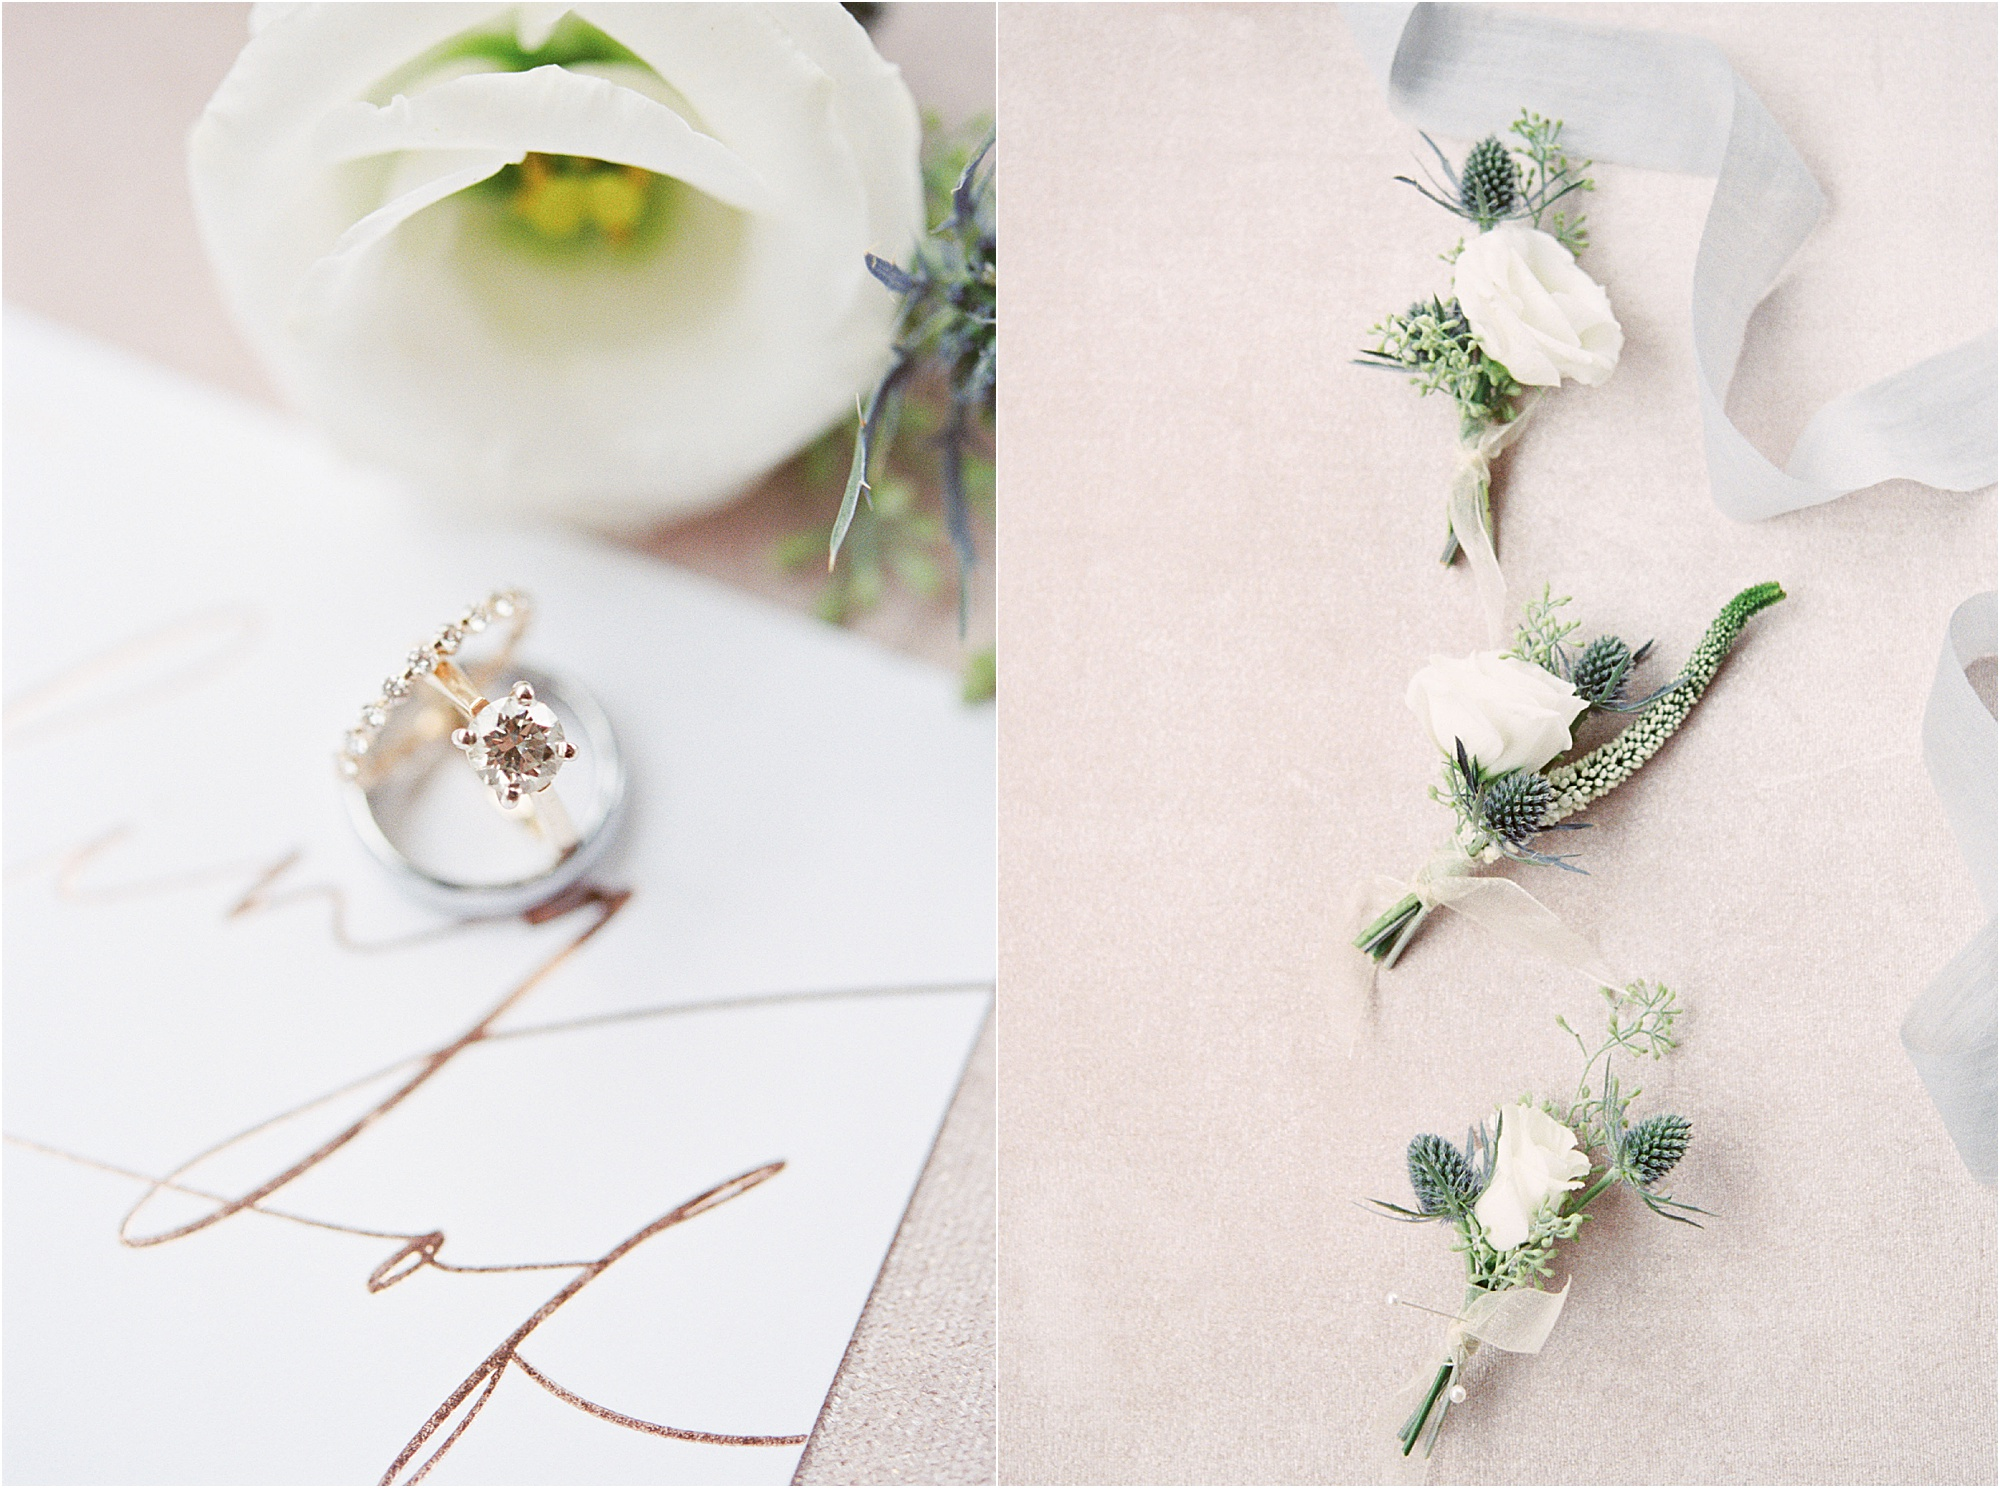 micro photo of wedding rings and boutonnieres